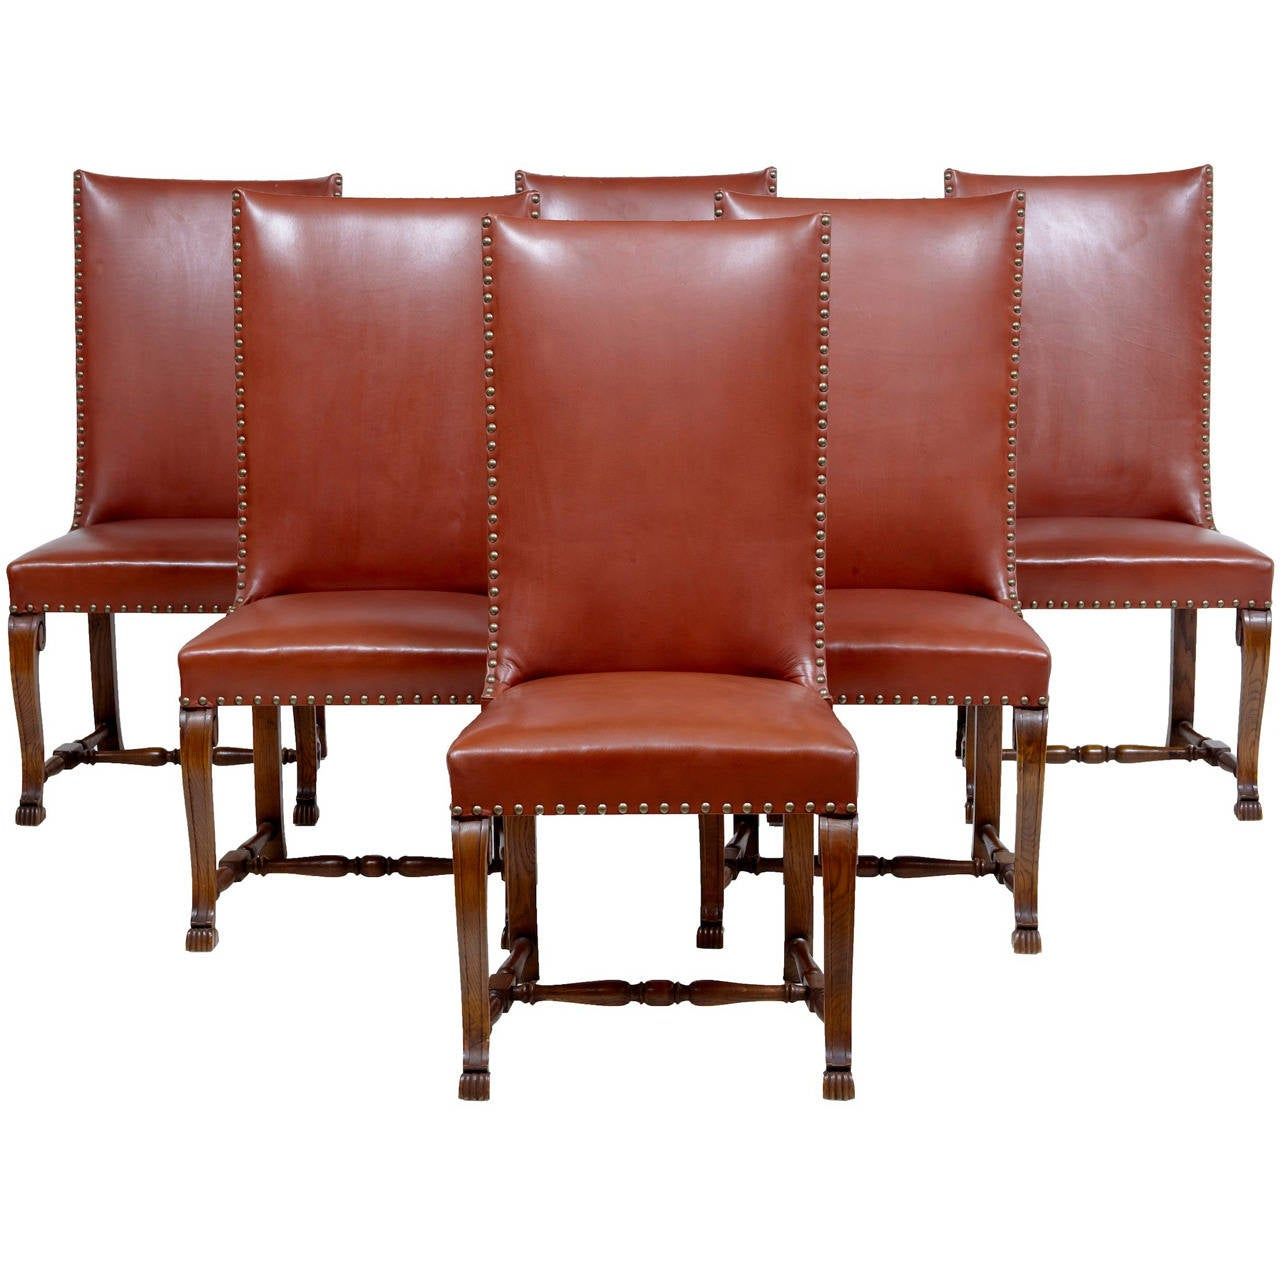 oak dining set 6 chairs plastic chair covers for sale unusual of walnut and art deco highback